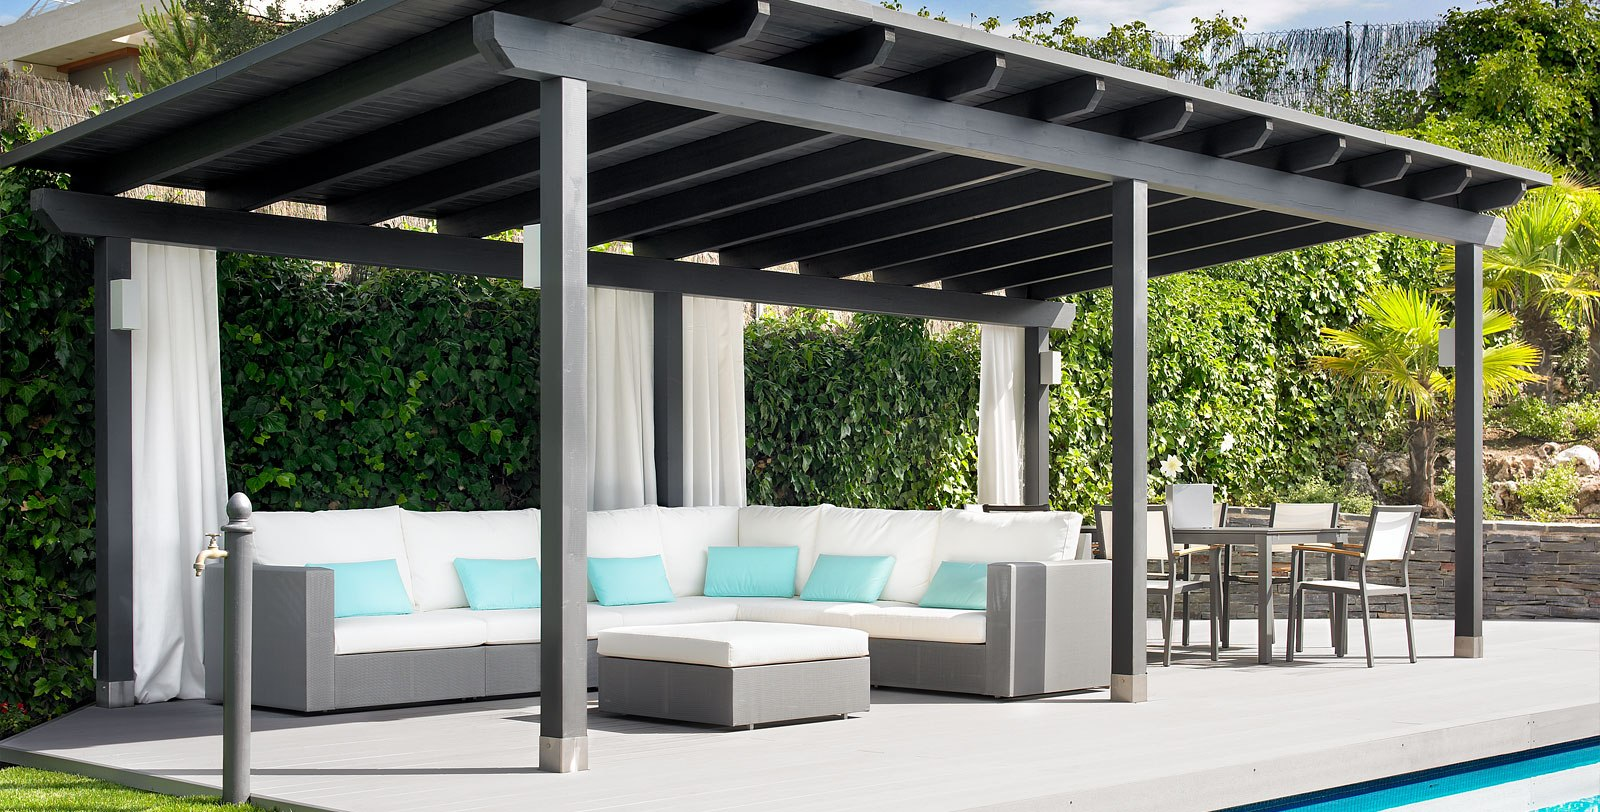 Shade by the pool with a pergola from Plant Professionals. Outdoor living spaces.